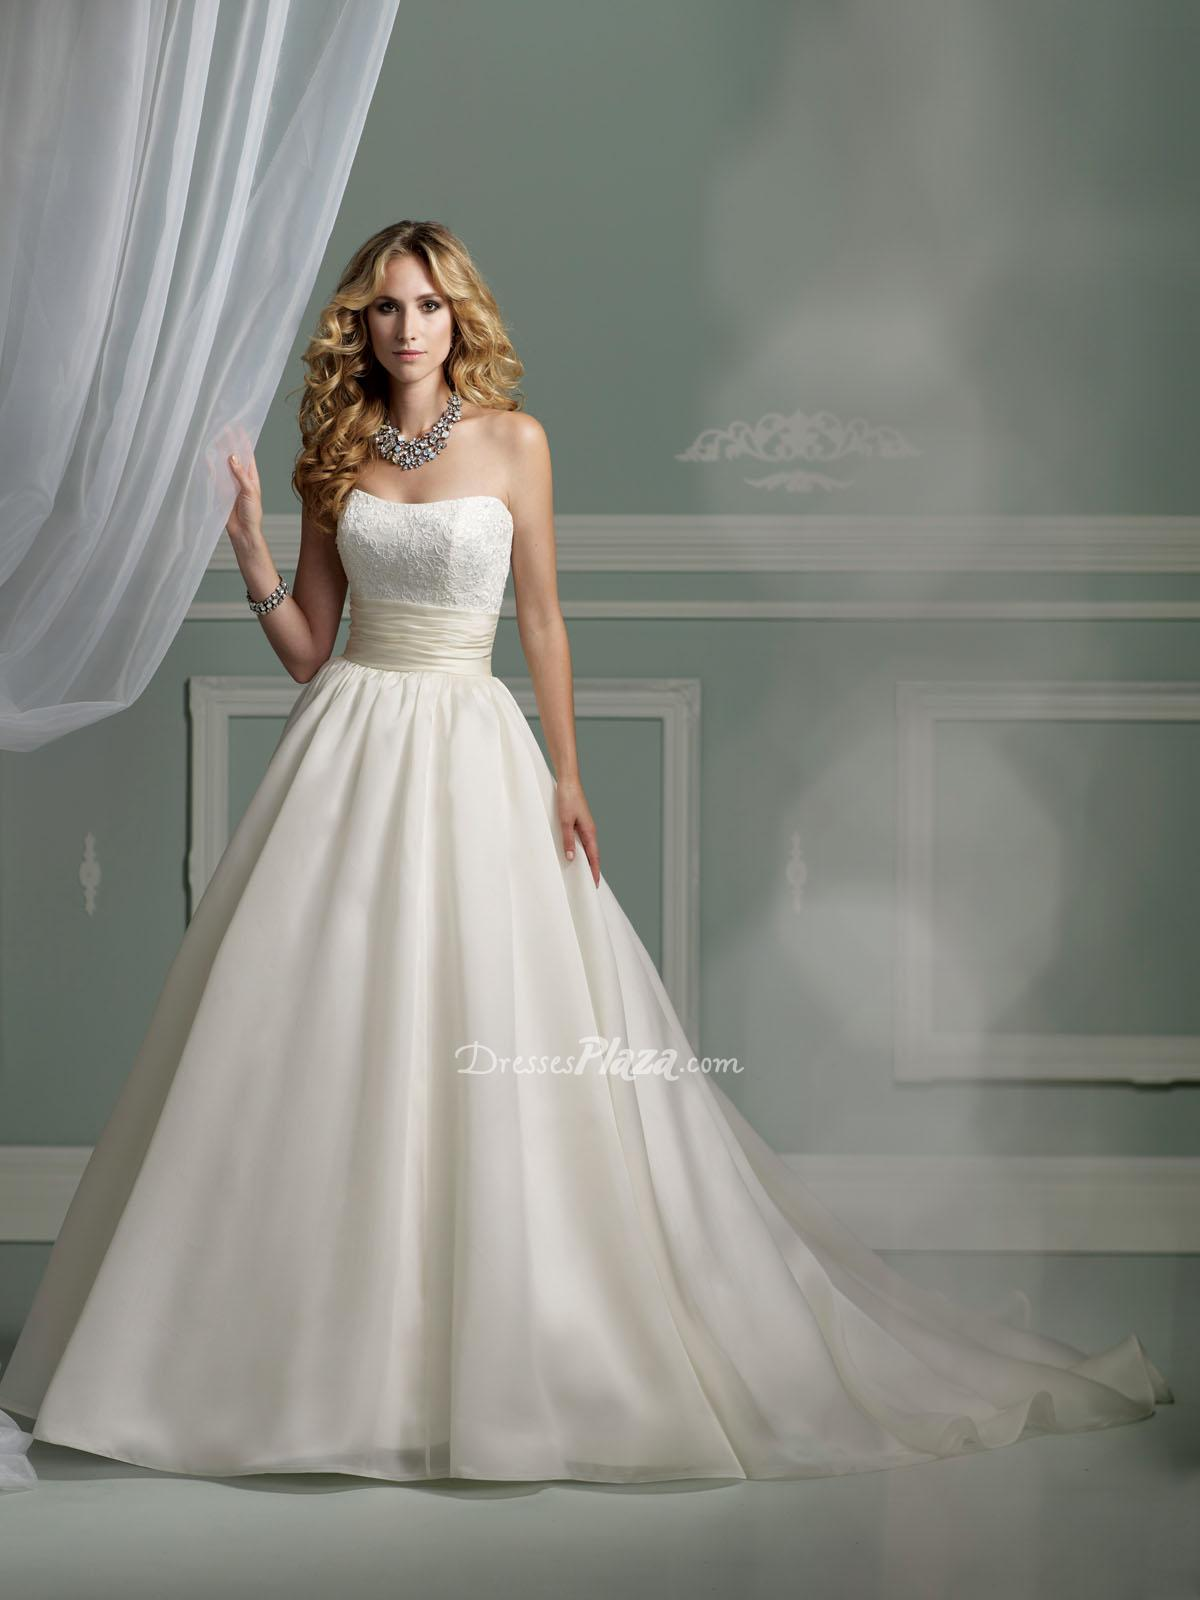 Princess satin strapless wedding dress with lace sang for Satin and lace wedding dresses